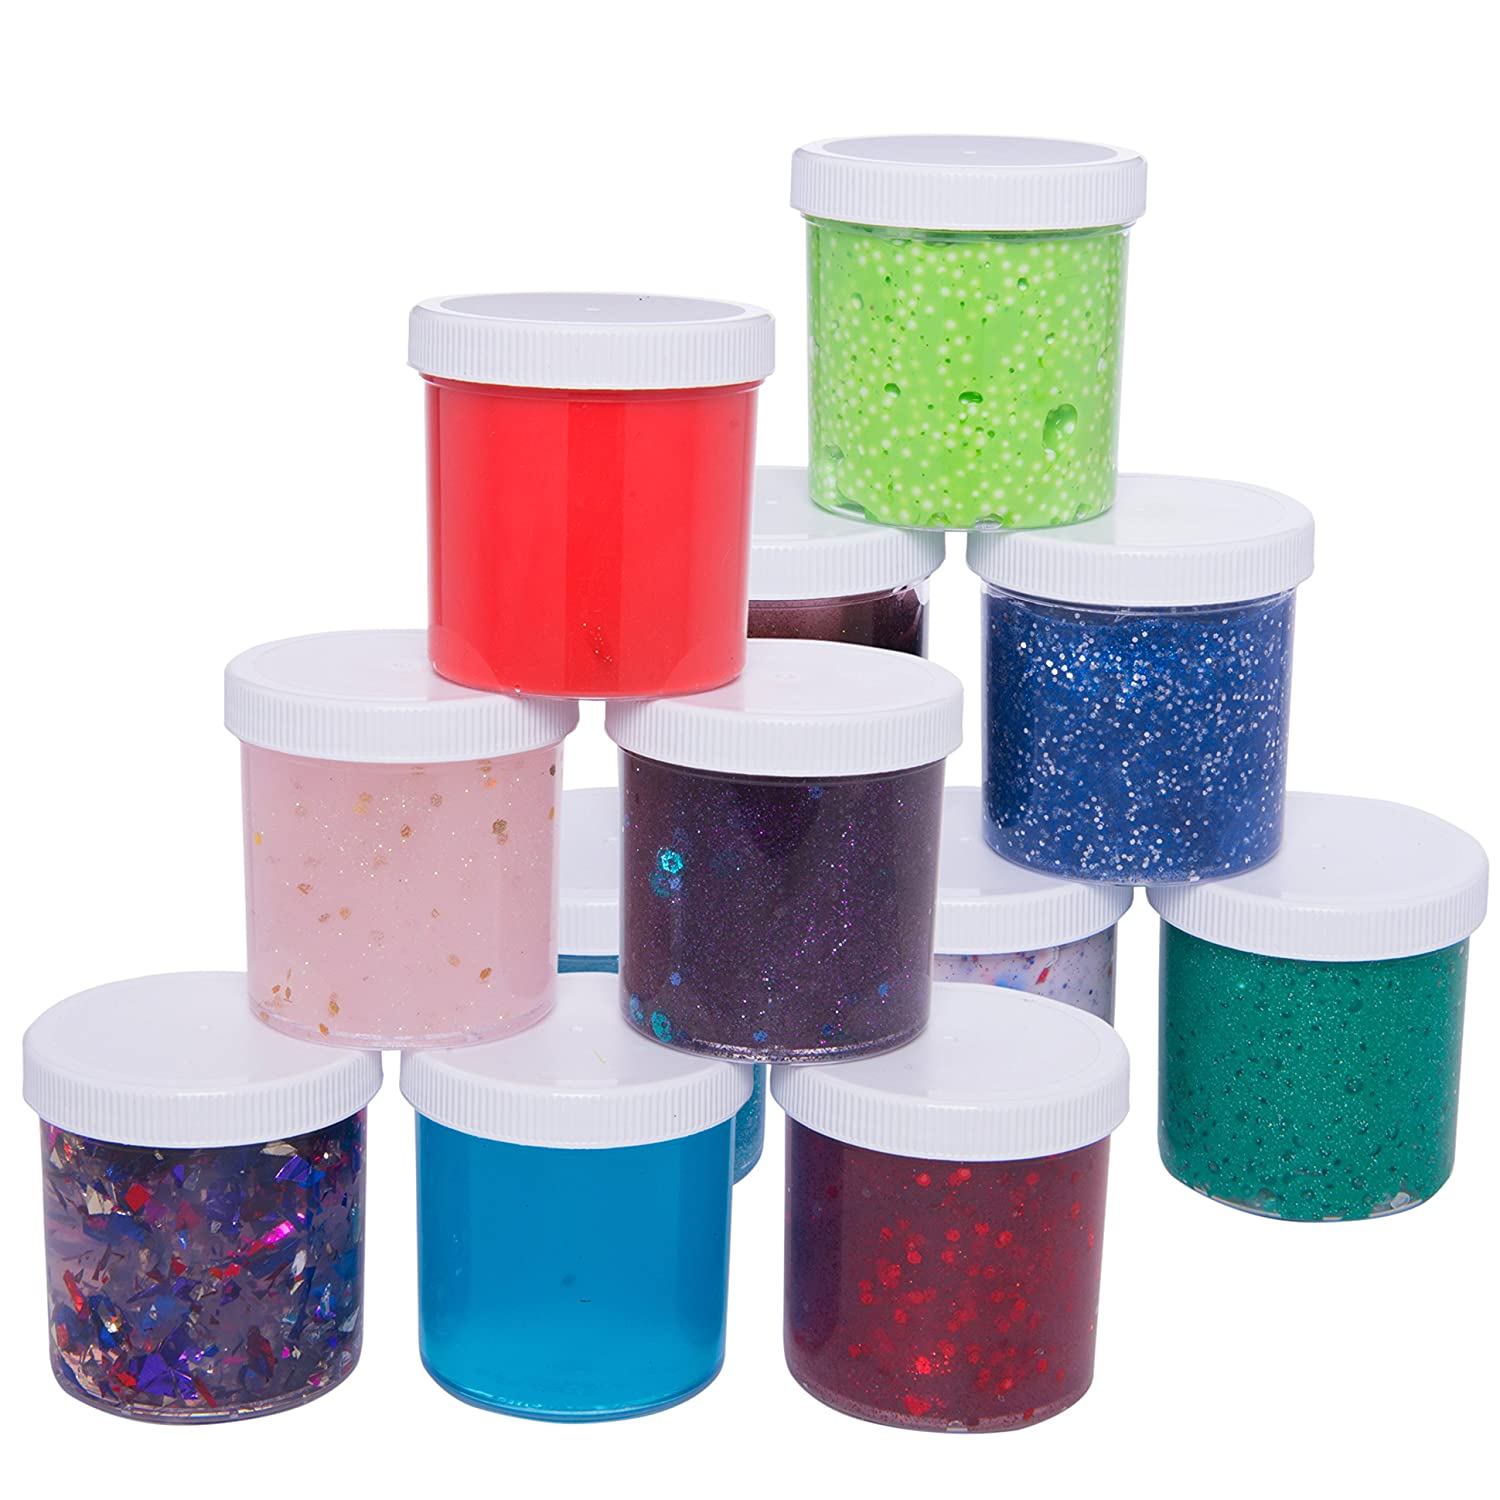 Hard Containers with Lids